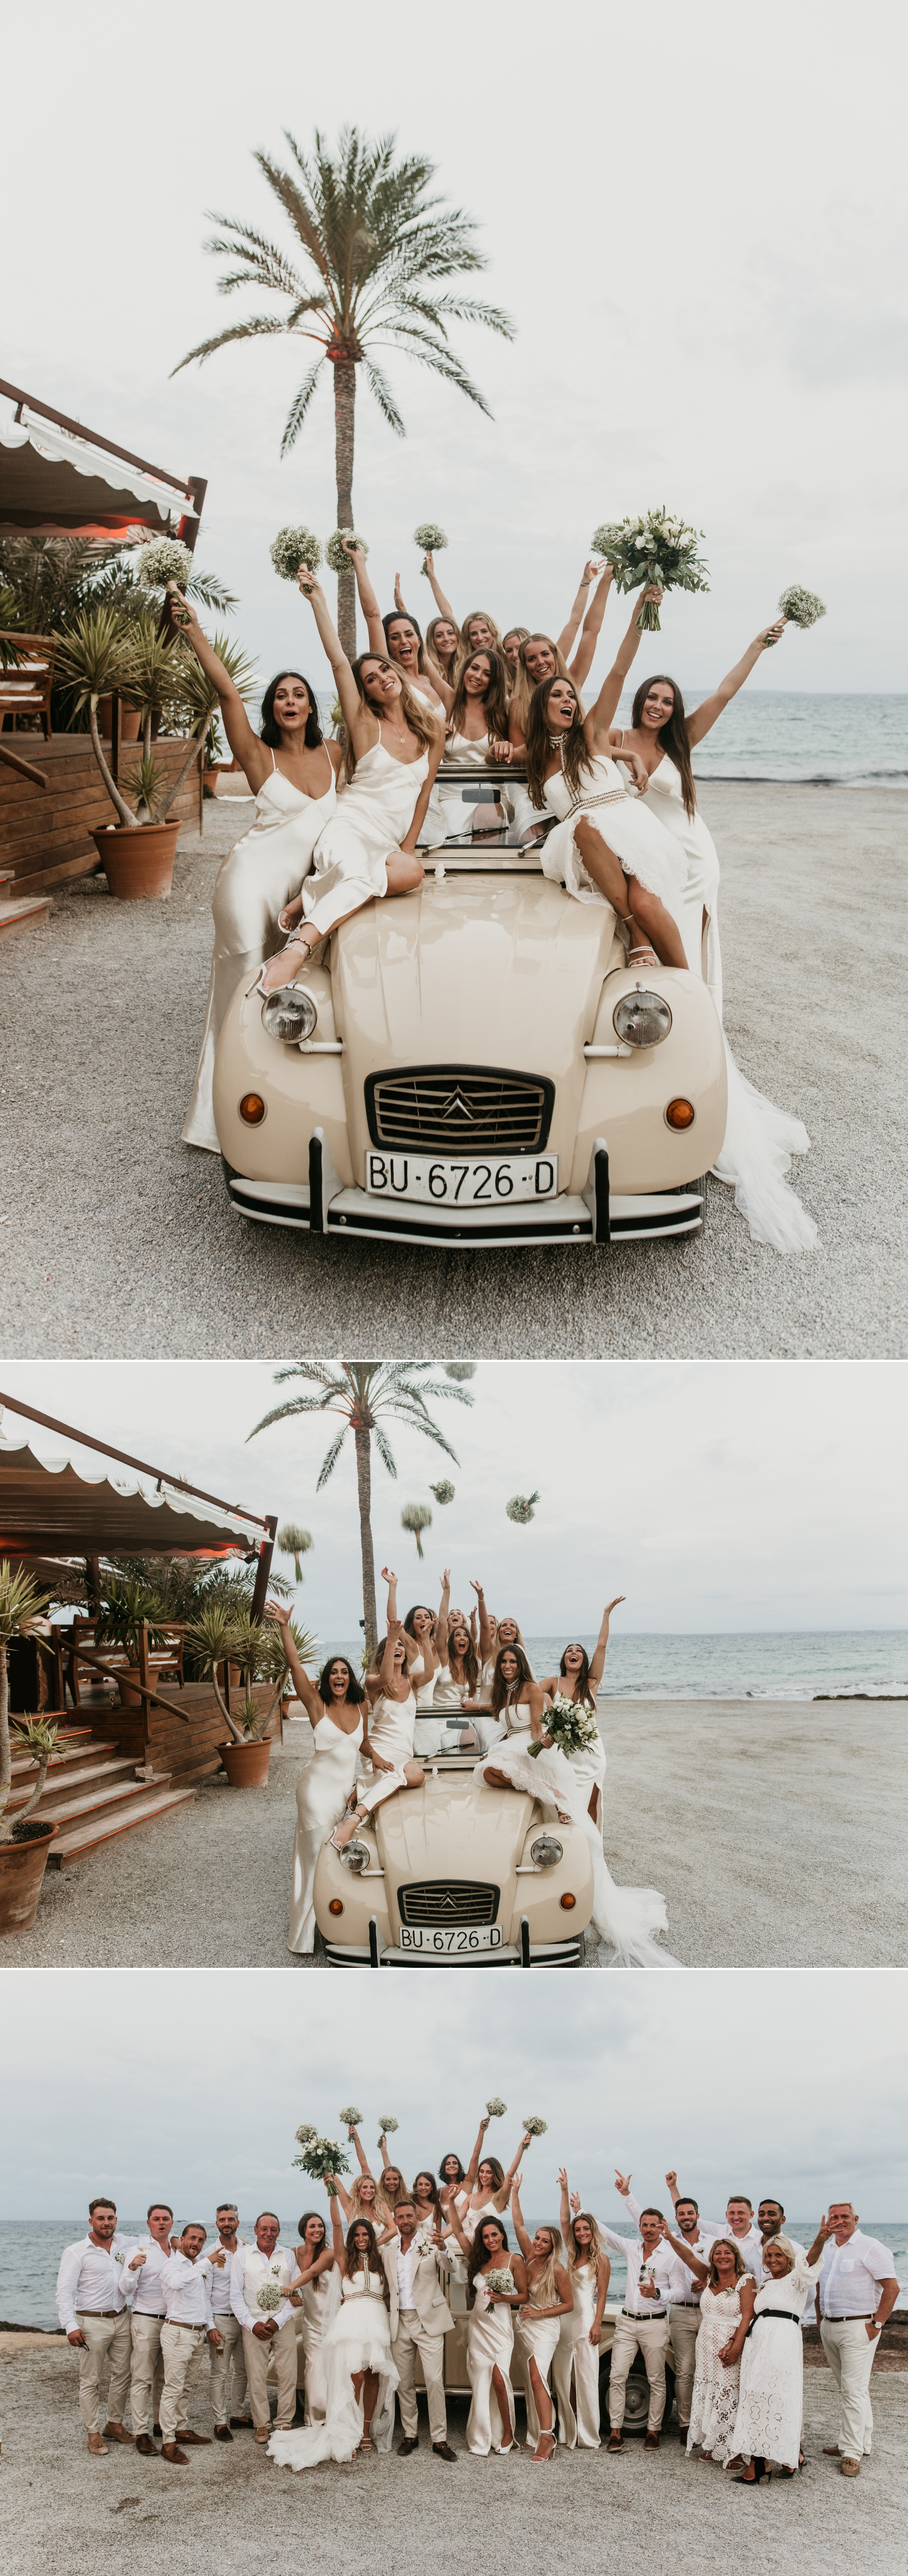 natural wedding photo destination la escollera ibiza 0098 1